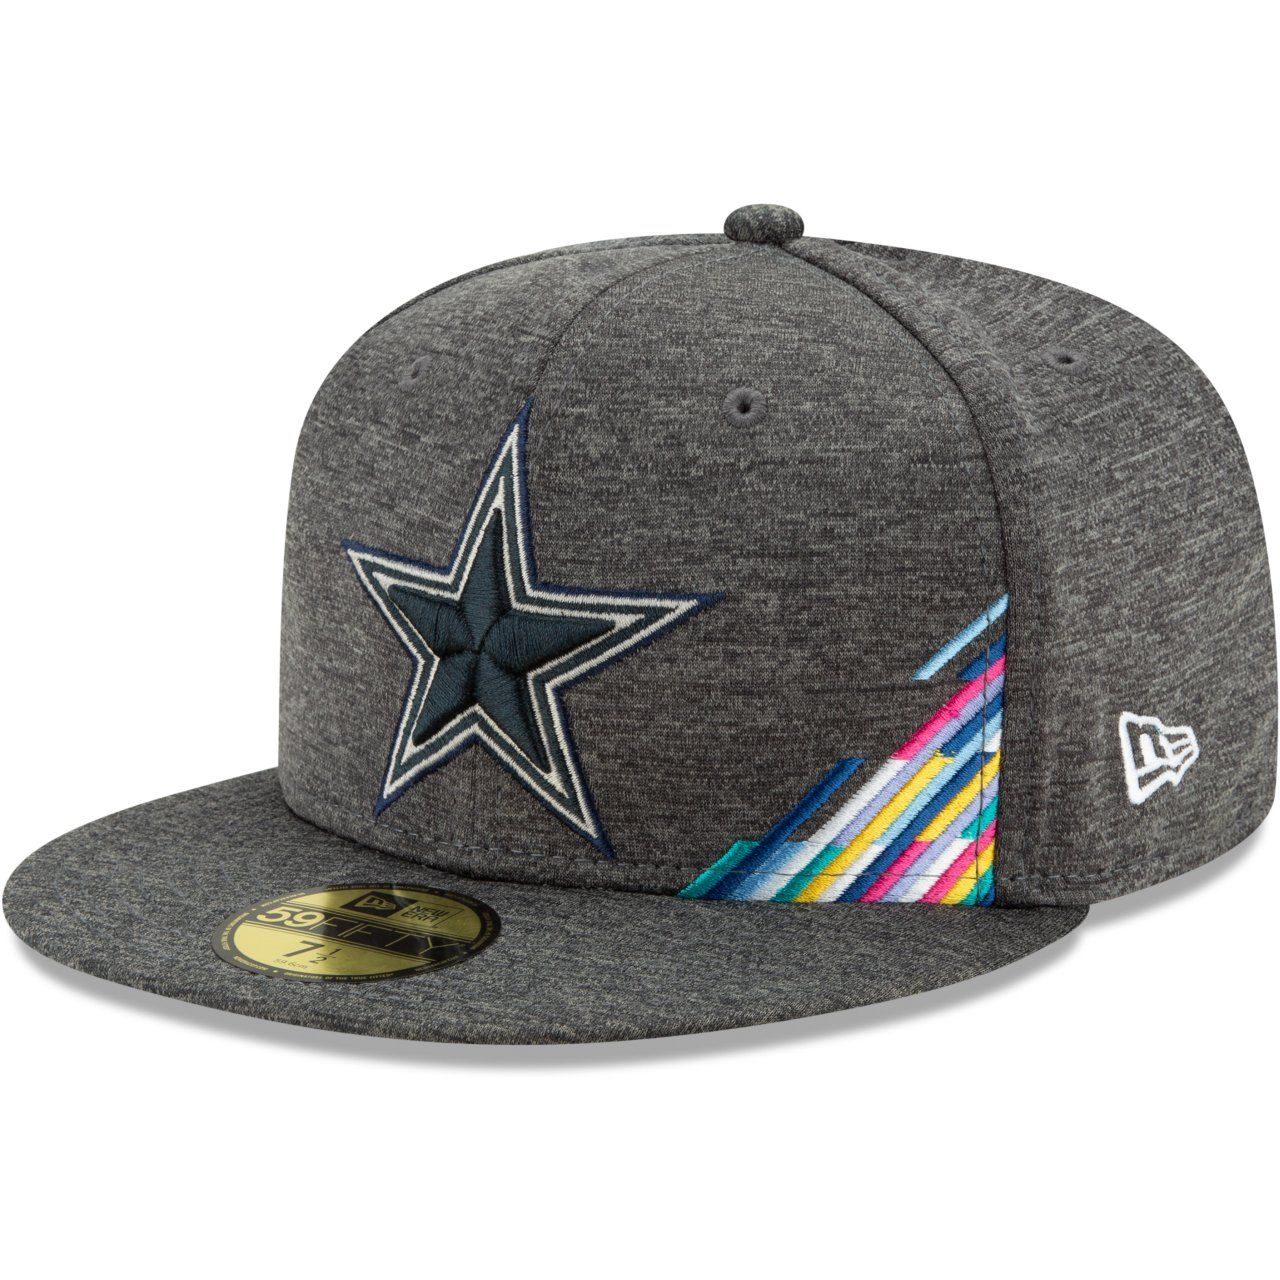 amfoo - New Era 59Fifty Fitted Cap - CRUCIAL CATCH Dallas Cowboys